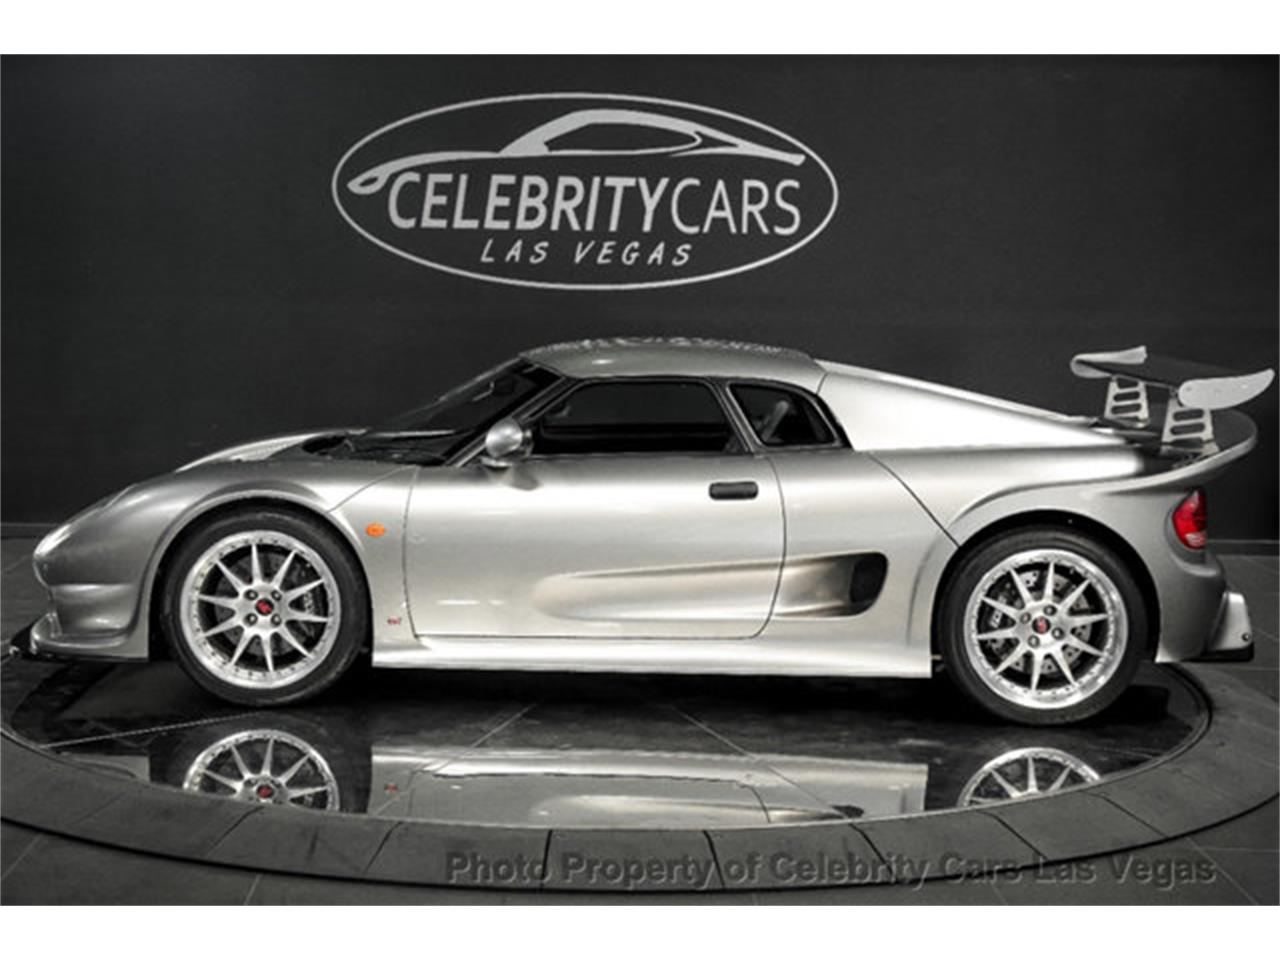 Large Picture of '04 Noble M12 GTO-3R - $54,900.00 - OY16